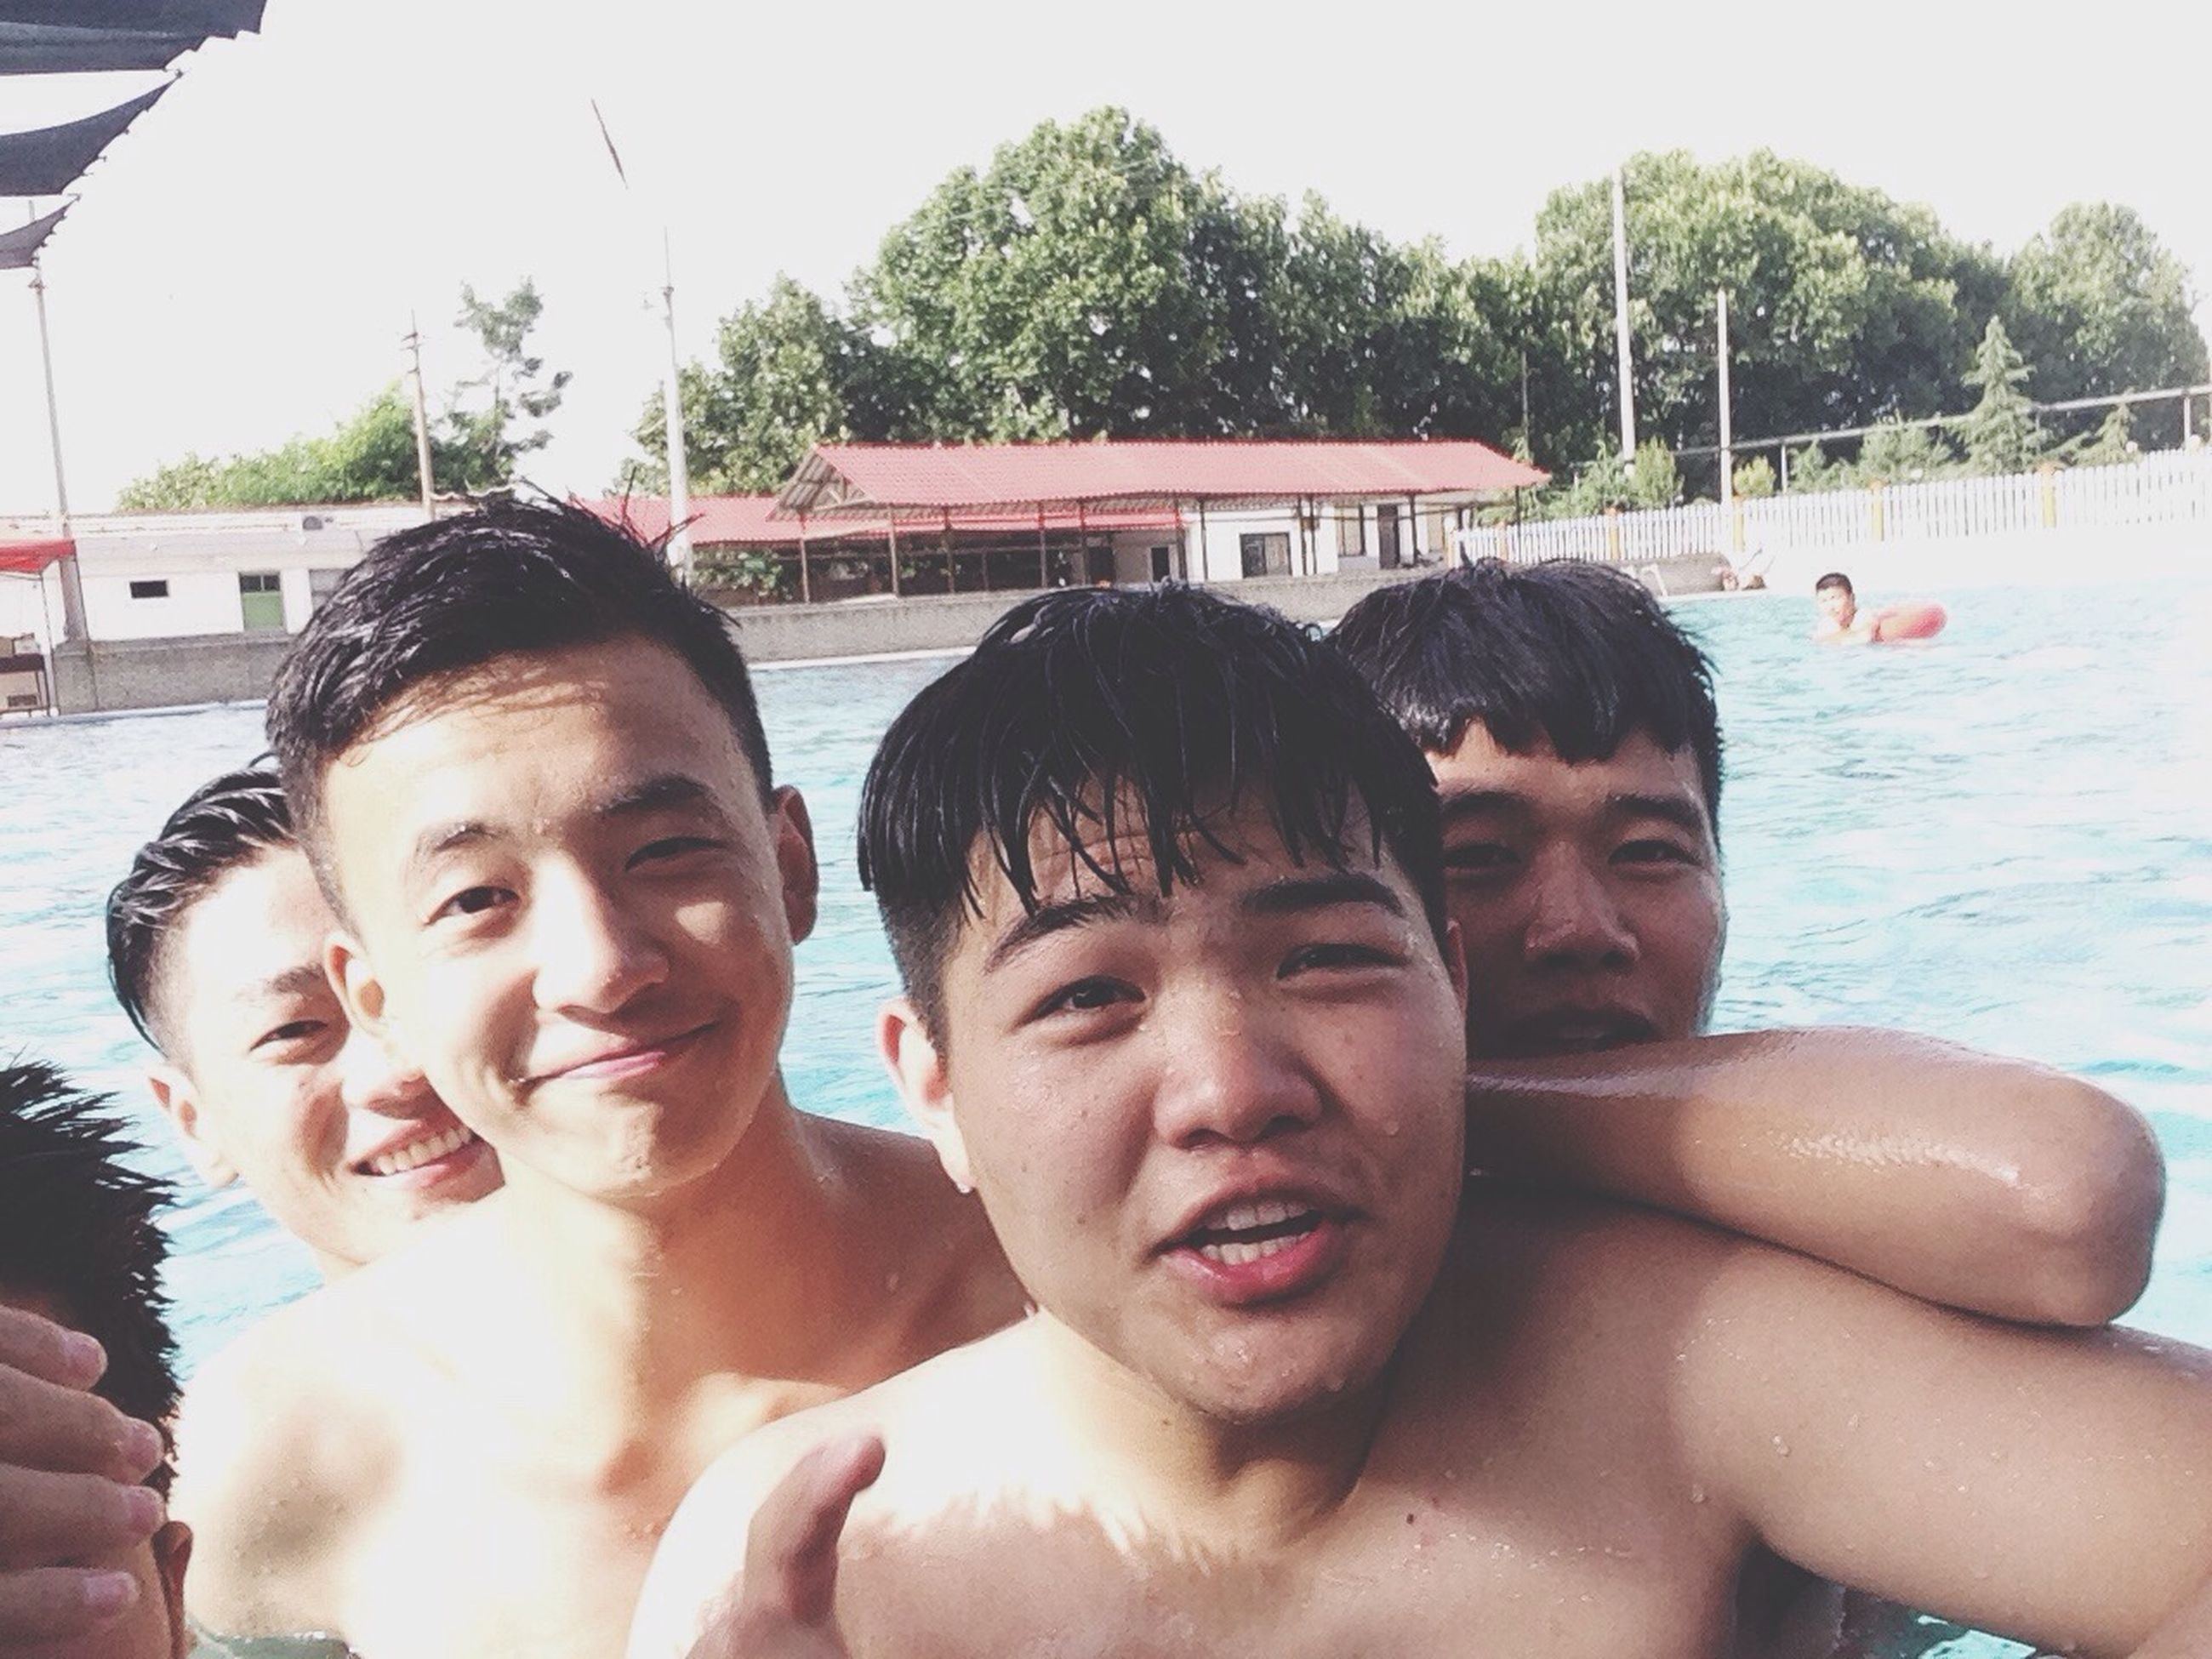 togetherness, bonding, lifestyles, person, leisure activity, portrait, love, happiness, looking at camera, smiling, young men, boys, friendship, childhood, water, family, elementary age, young adult